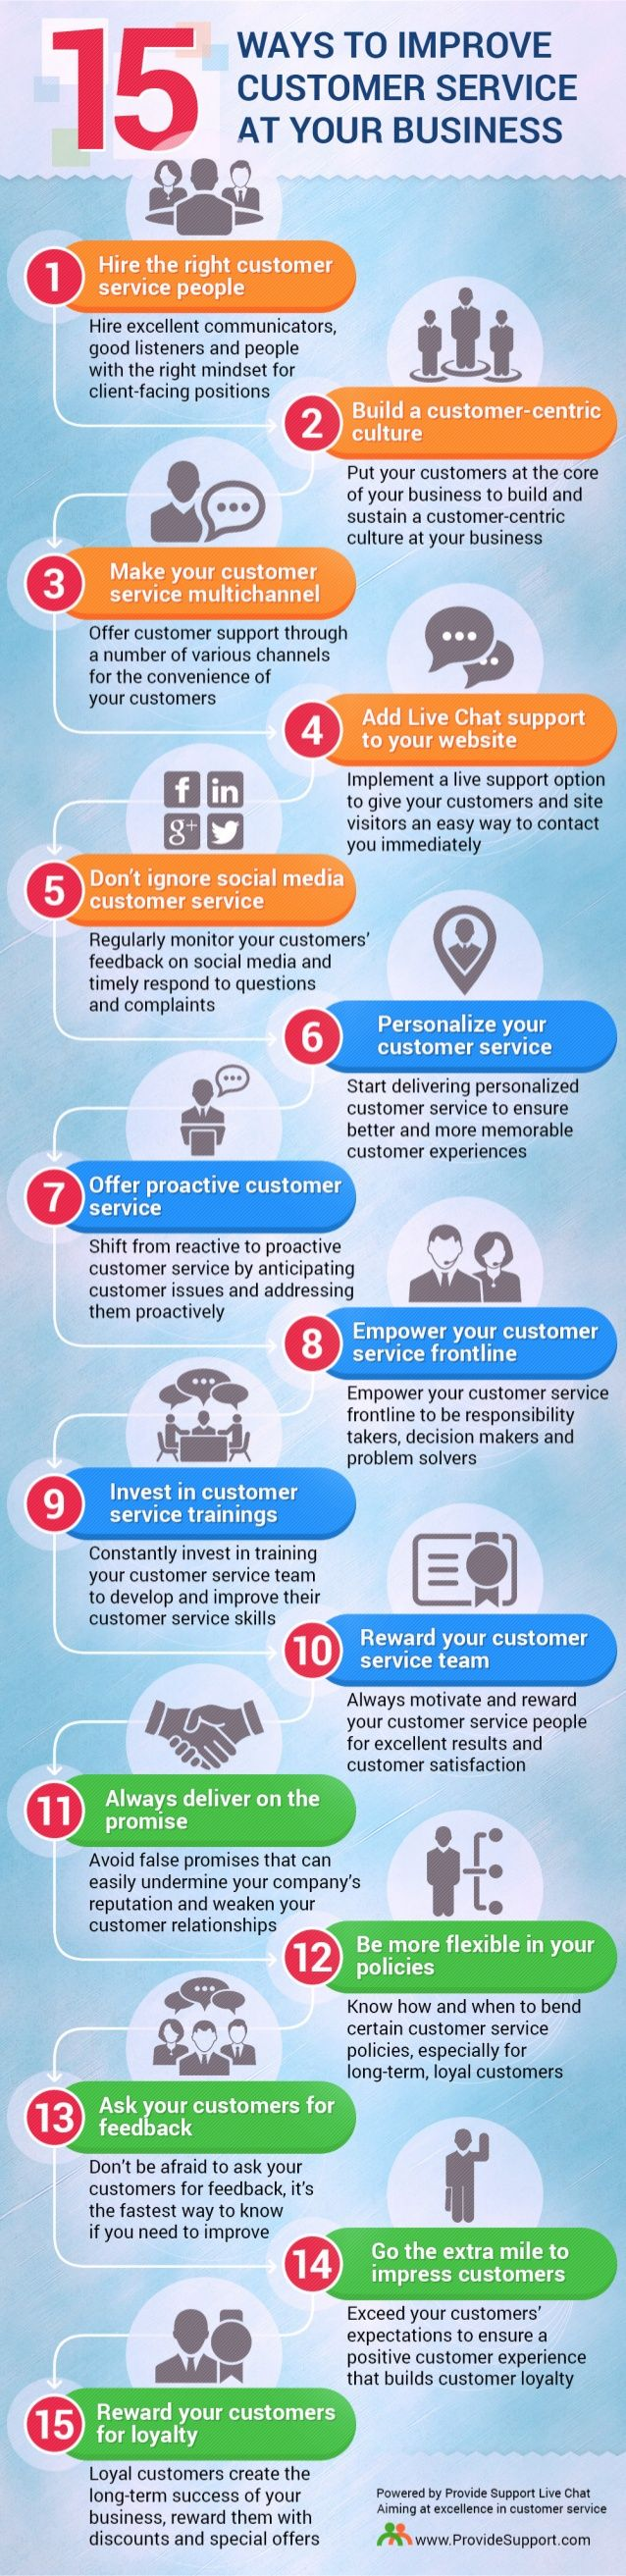 15 Ways to Improve #CustomerService at Your Business #CRM #Marketingautomationsoftware